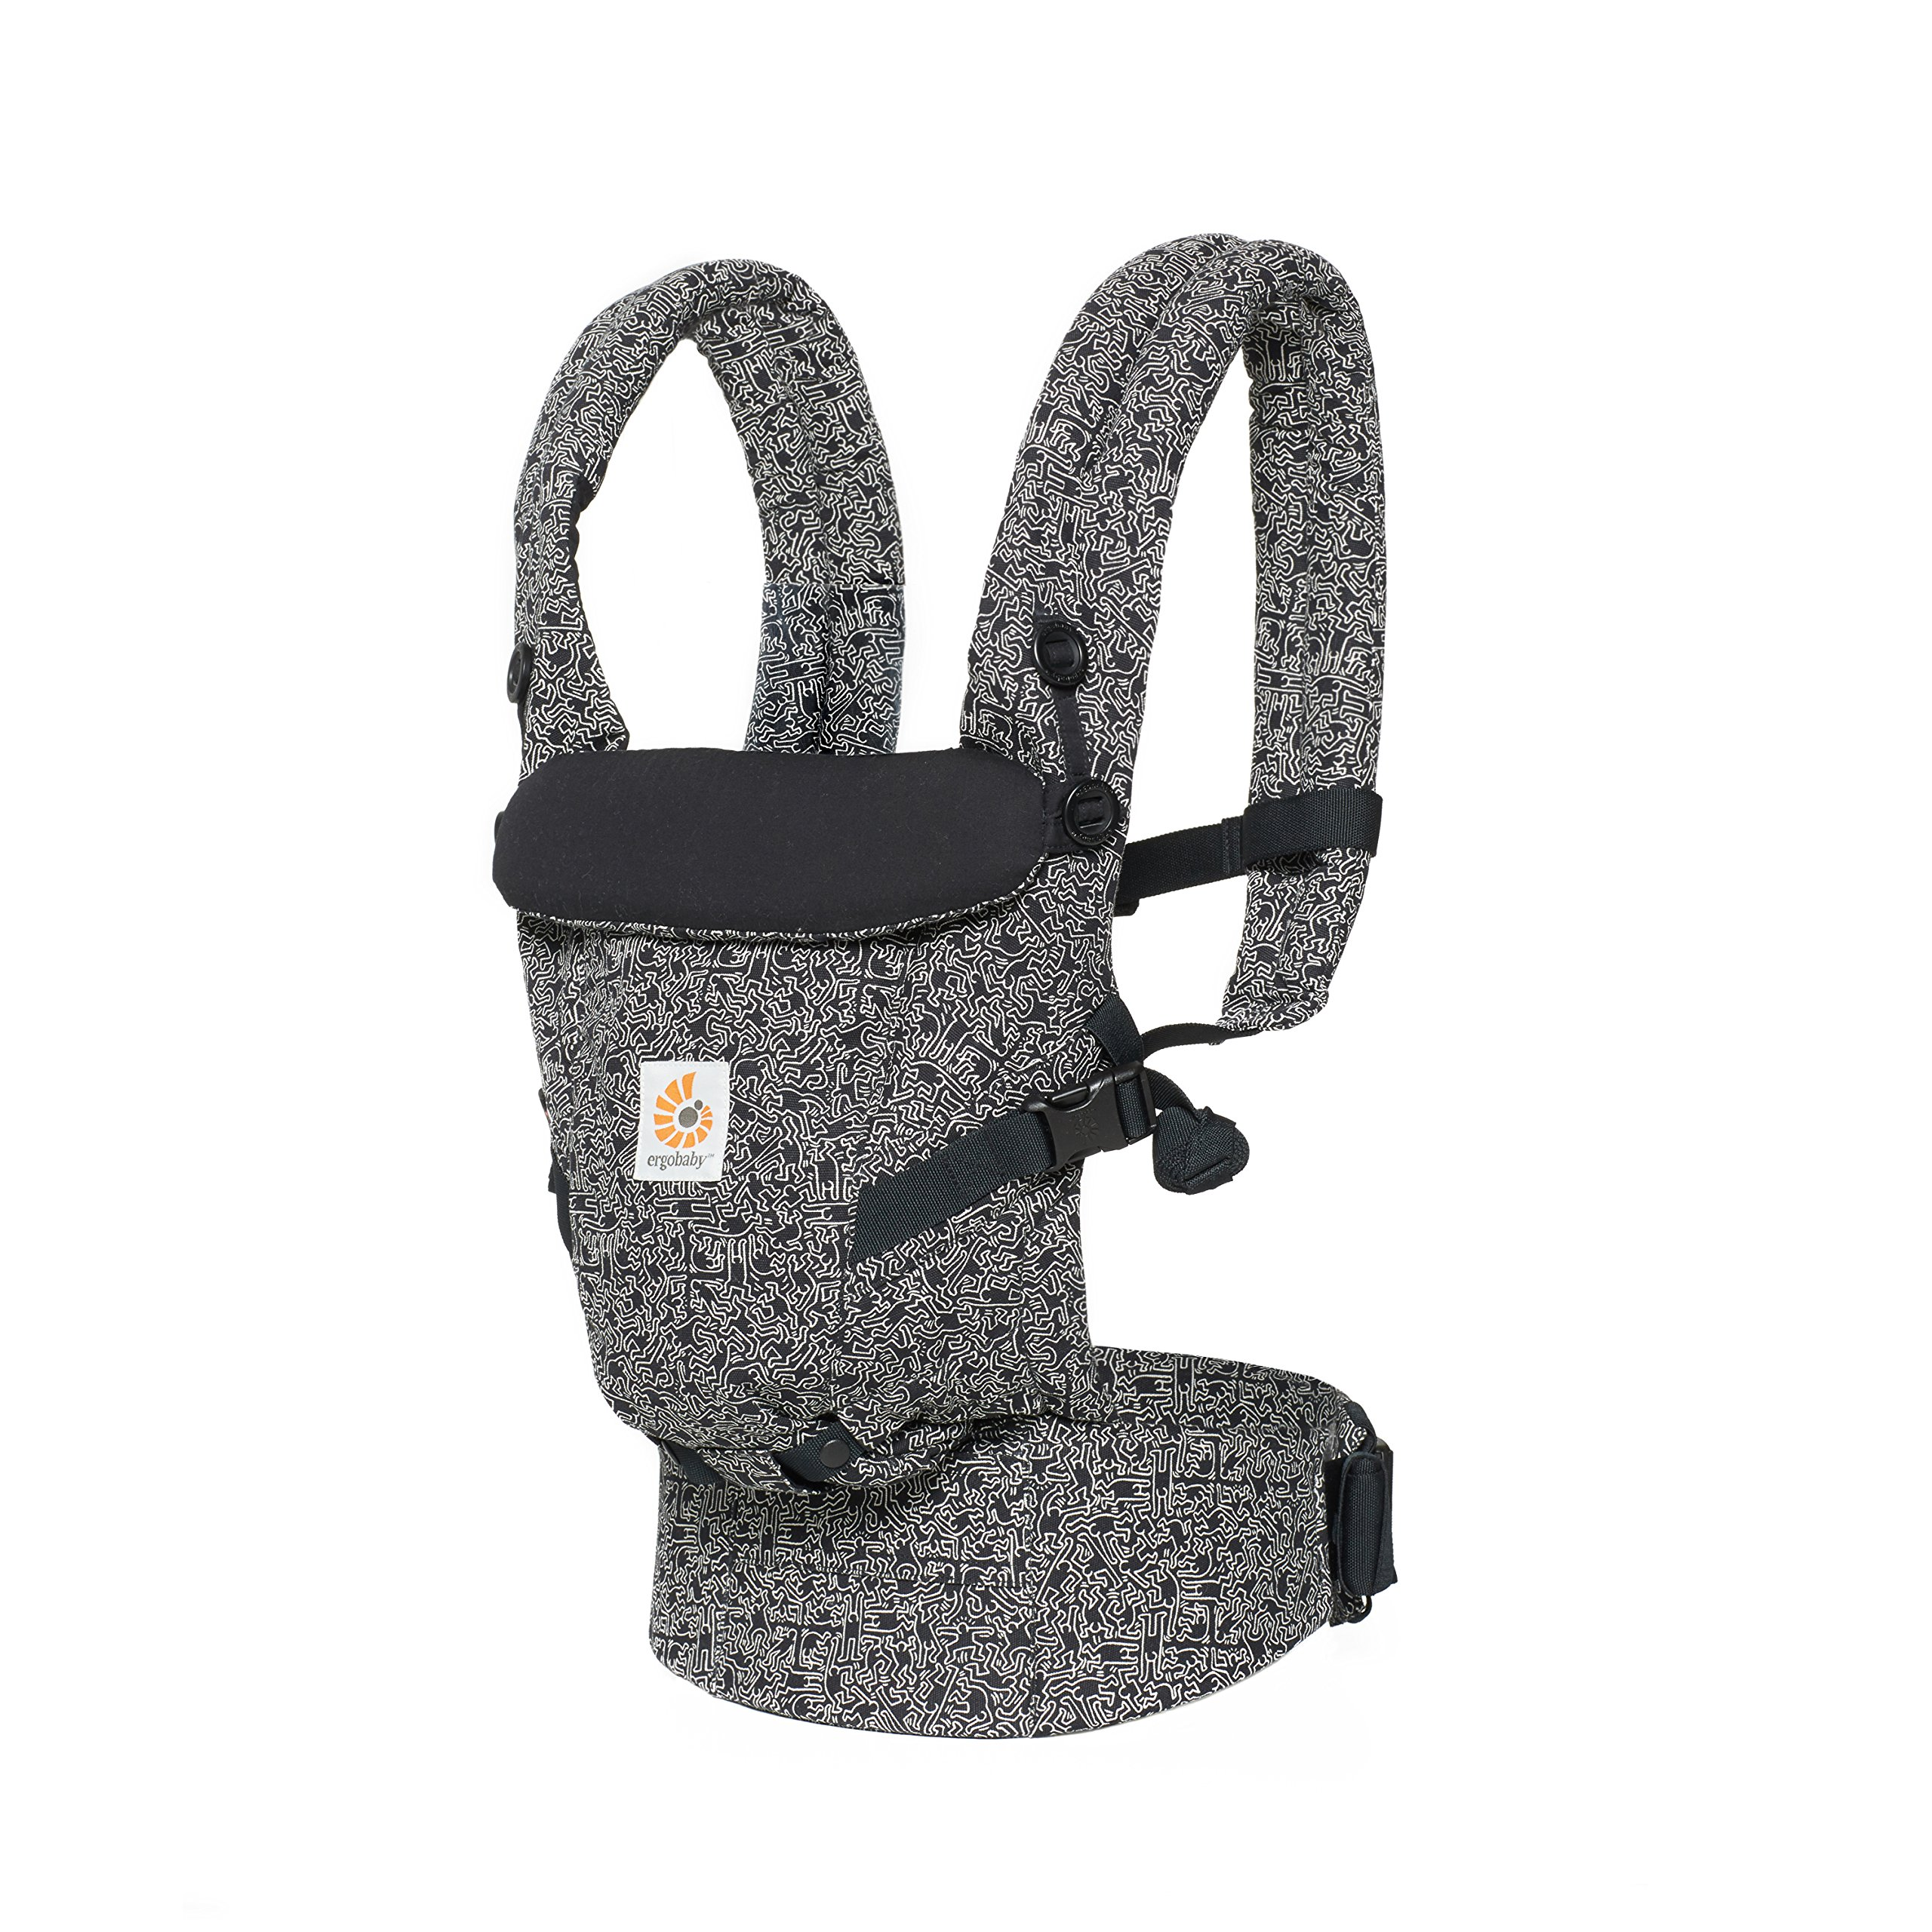 Ergobaby Adapt Award Winning Ergonomic Multi-Position Baby Carrier, Newborn to Toddler, Special Edition Keith Haring, Black